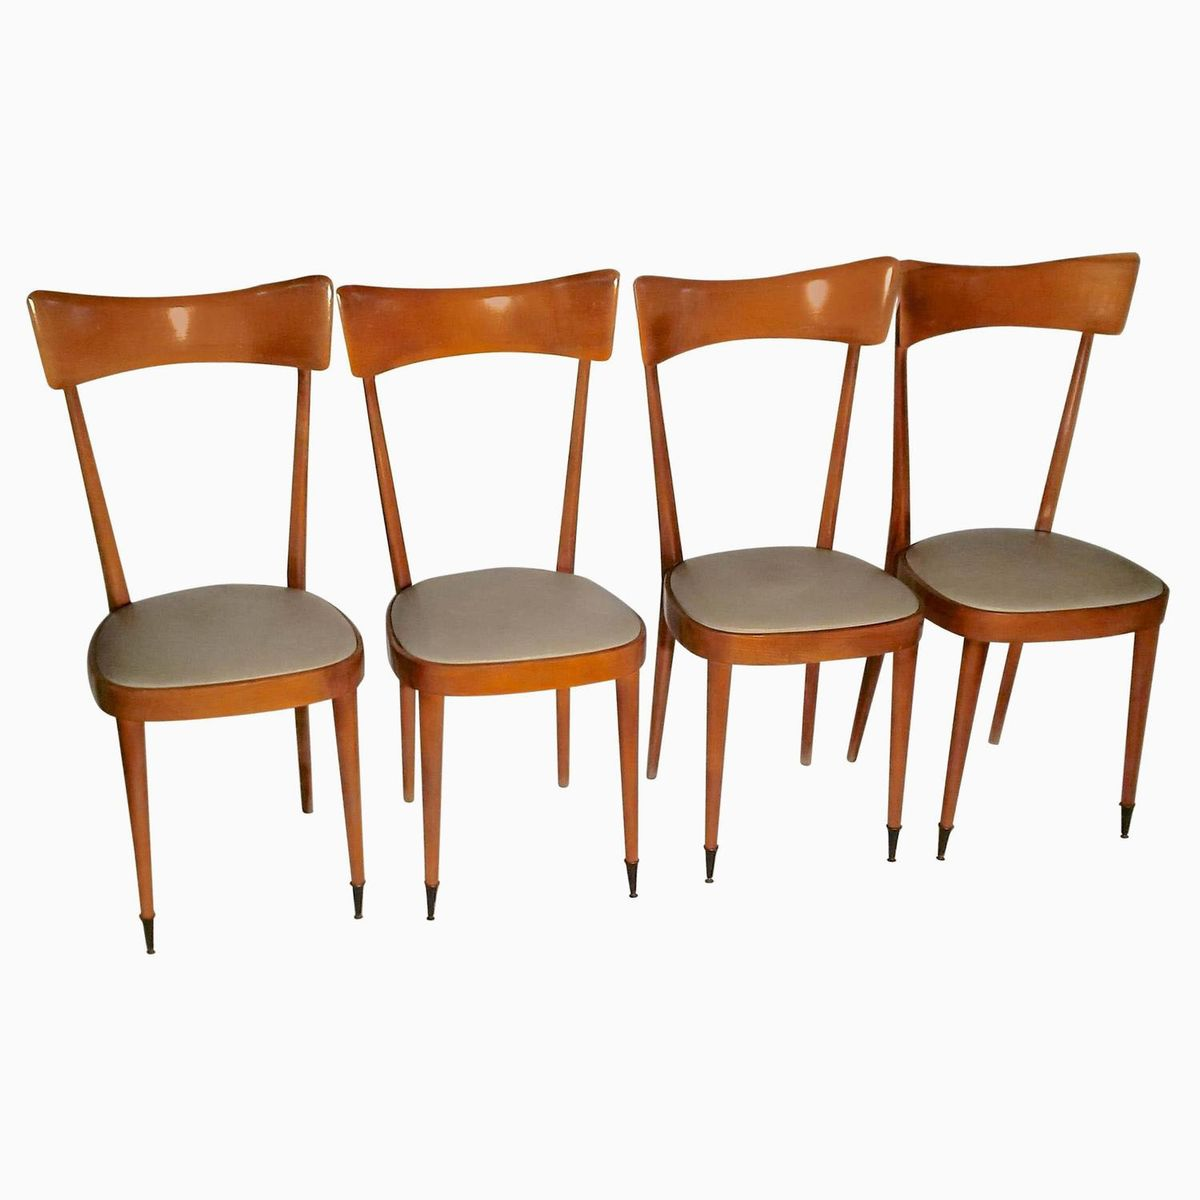 Mid century italian dining chairs set of 4 for sale at pamono for Chair in italian